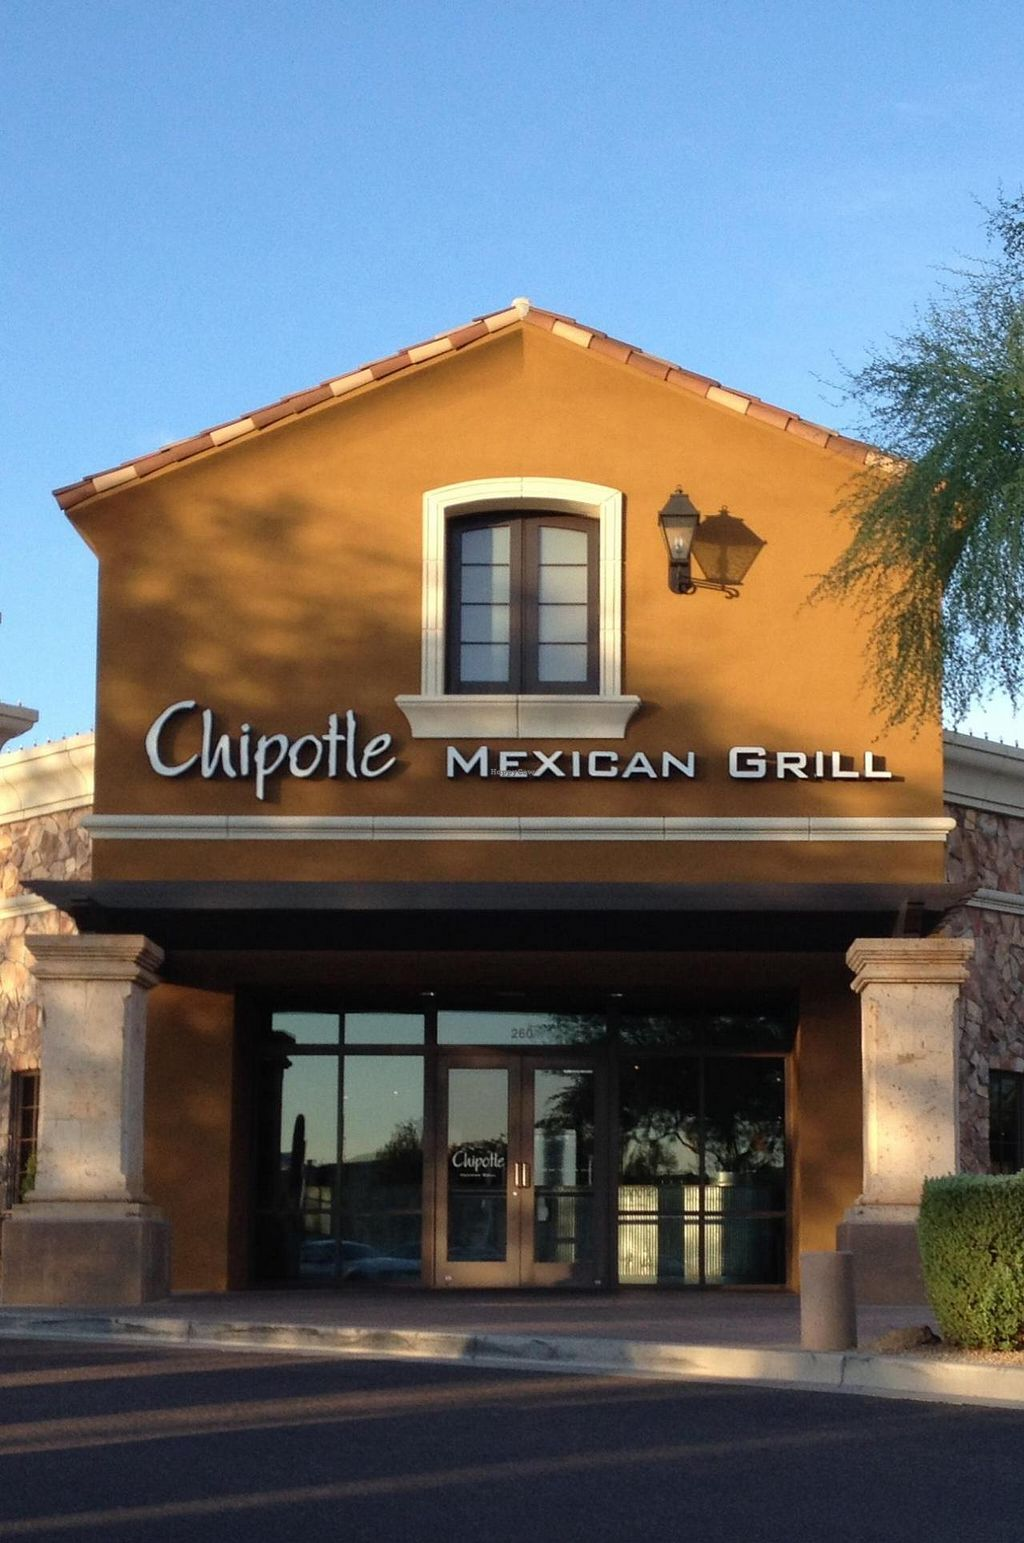 """Photo of Chipotle  by <a href=""""/members/profile/Tigra220"""">Tigra220</a> <br/>Chipotle  <br/> September 3, 2014  - <a href='/contact/abuse/image/50925/78919'>Report</a>"""